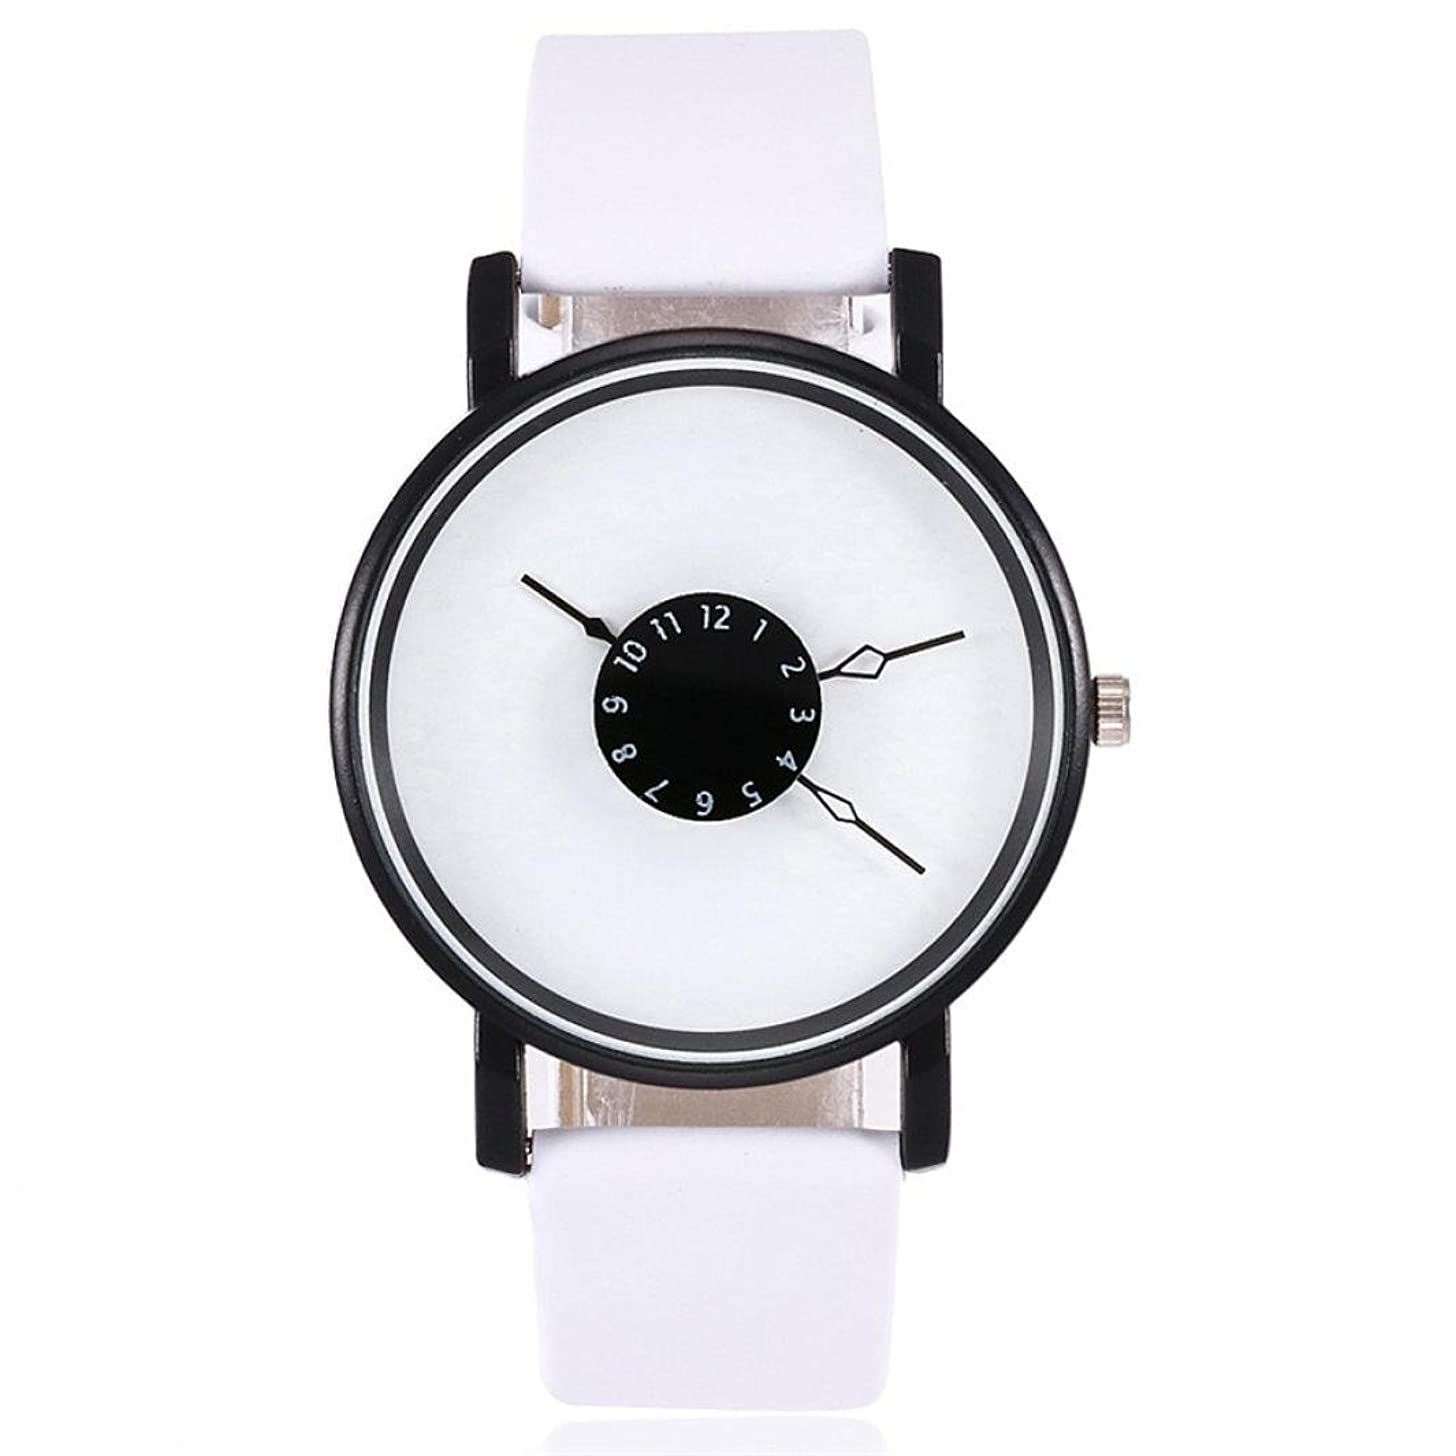 WM & MW Hot Sale Women's Watches Basic Leather Band Design Casual Quartz Watch Analog Wrist Watches